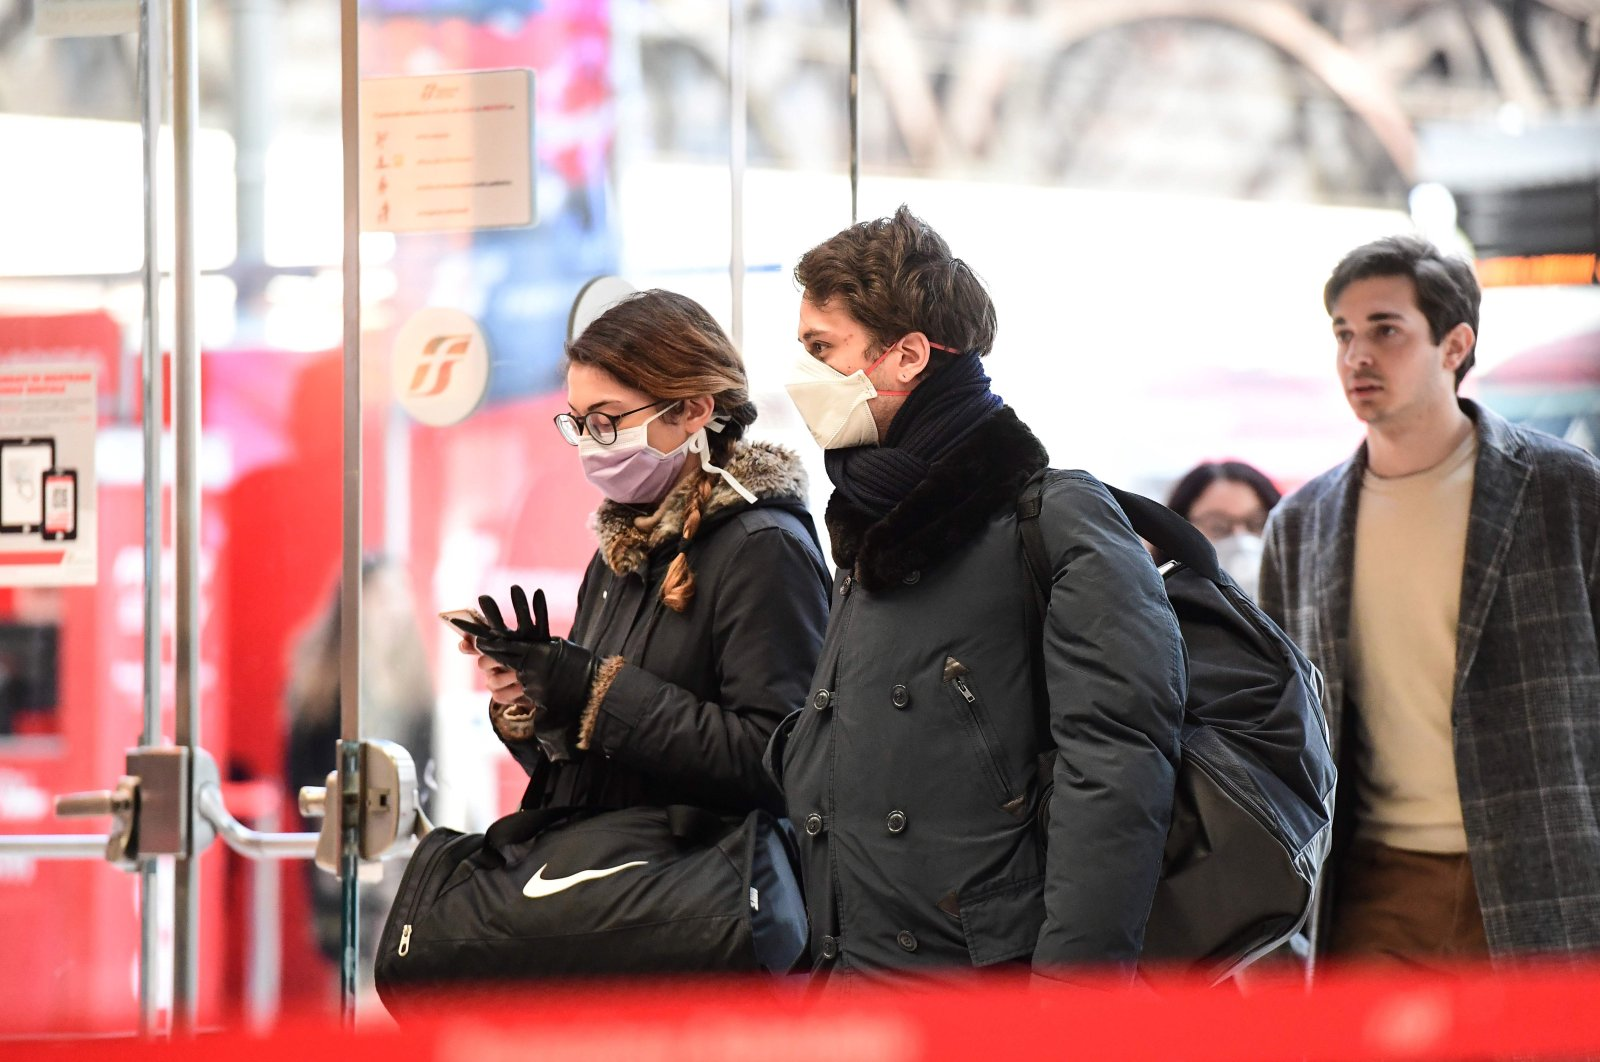 Passengers wearing protective face masks enter Milano Centrale railway station in Milan on March 8, 2020. (AFP Photo)